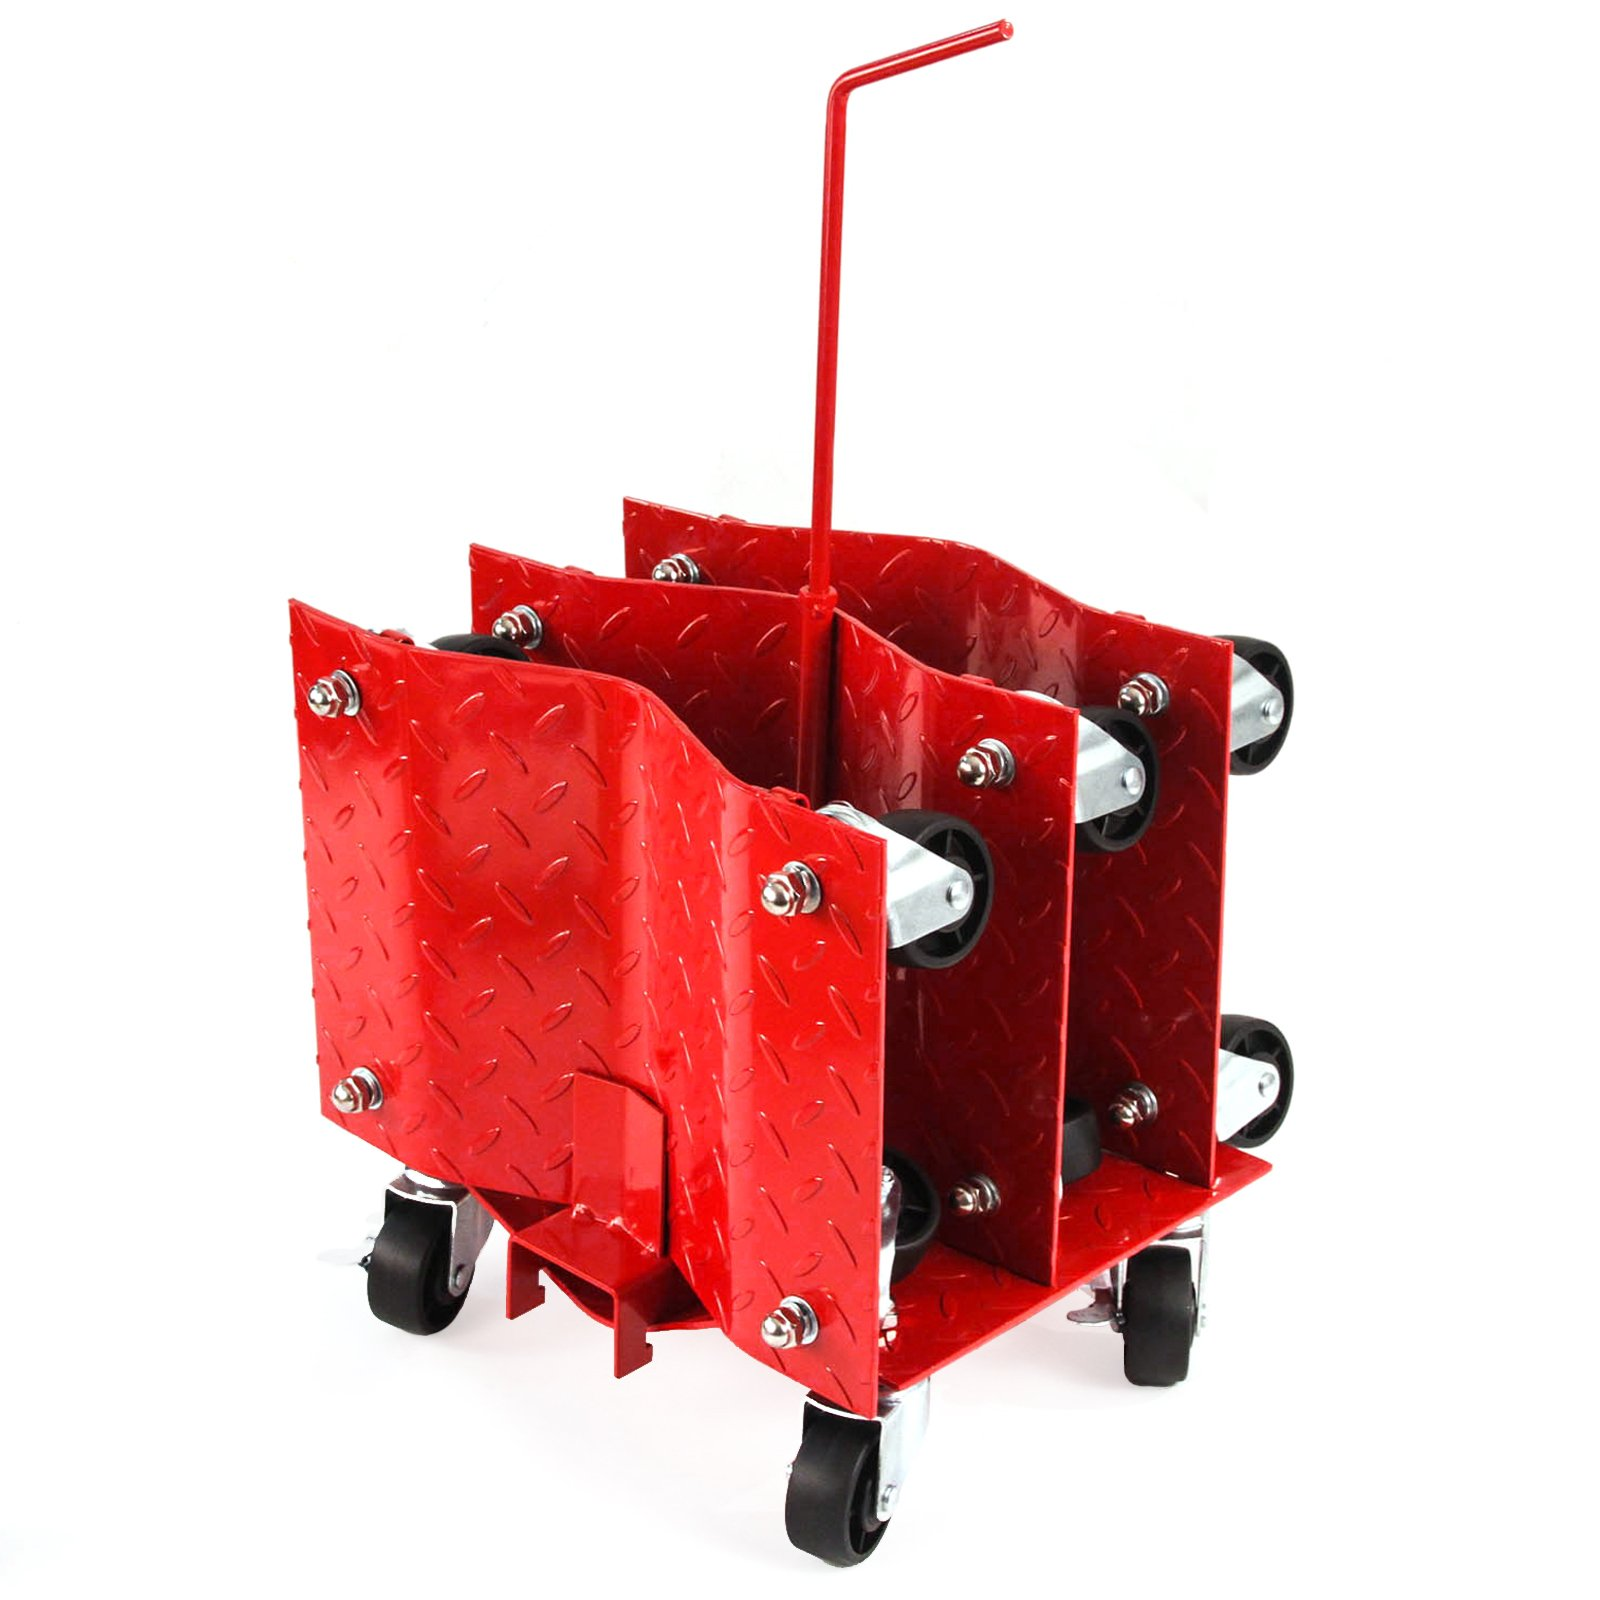 4 - Red With Storage Rack 12'' Tire Premium Skates Wheel Car Dolly Ball Bearings Skate Moving A Car Easy Furniture Movers